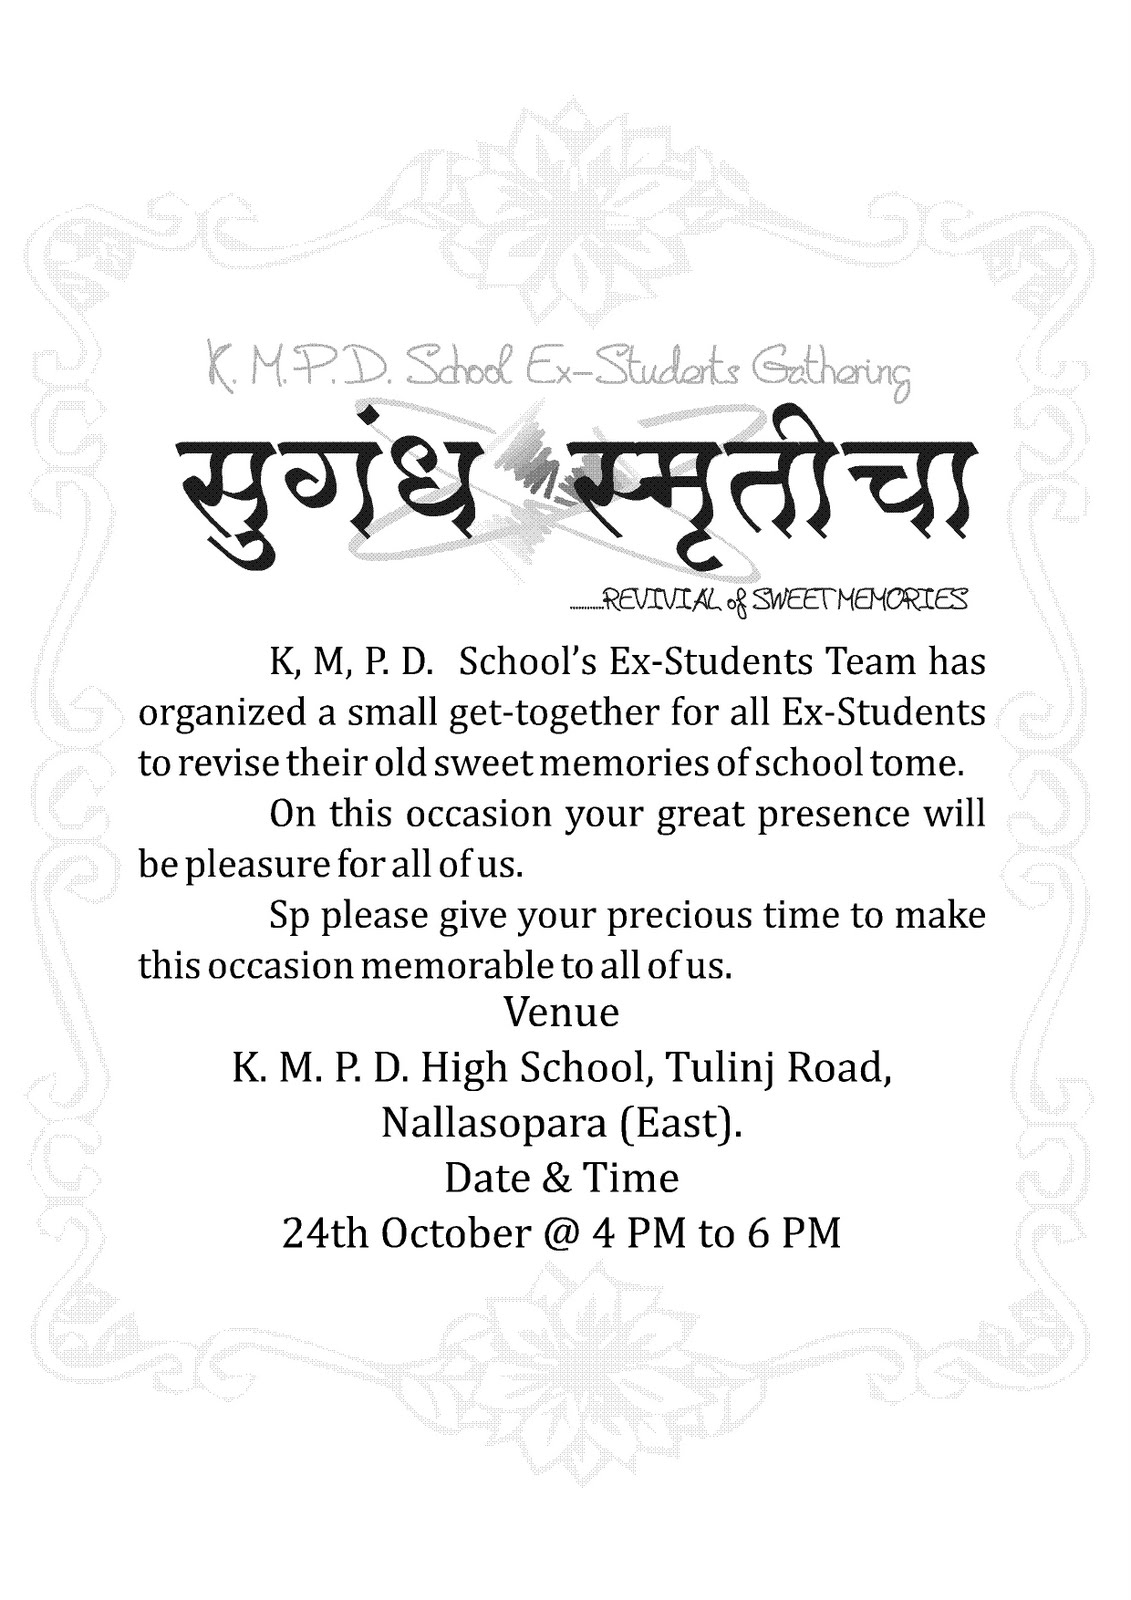 Sample Invitation Letter For Musical Event – Sample Invitation for Get Together